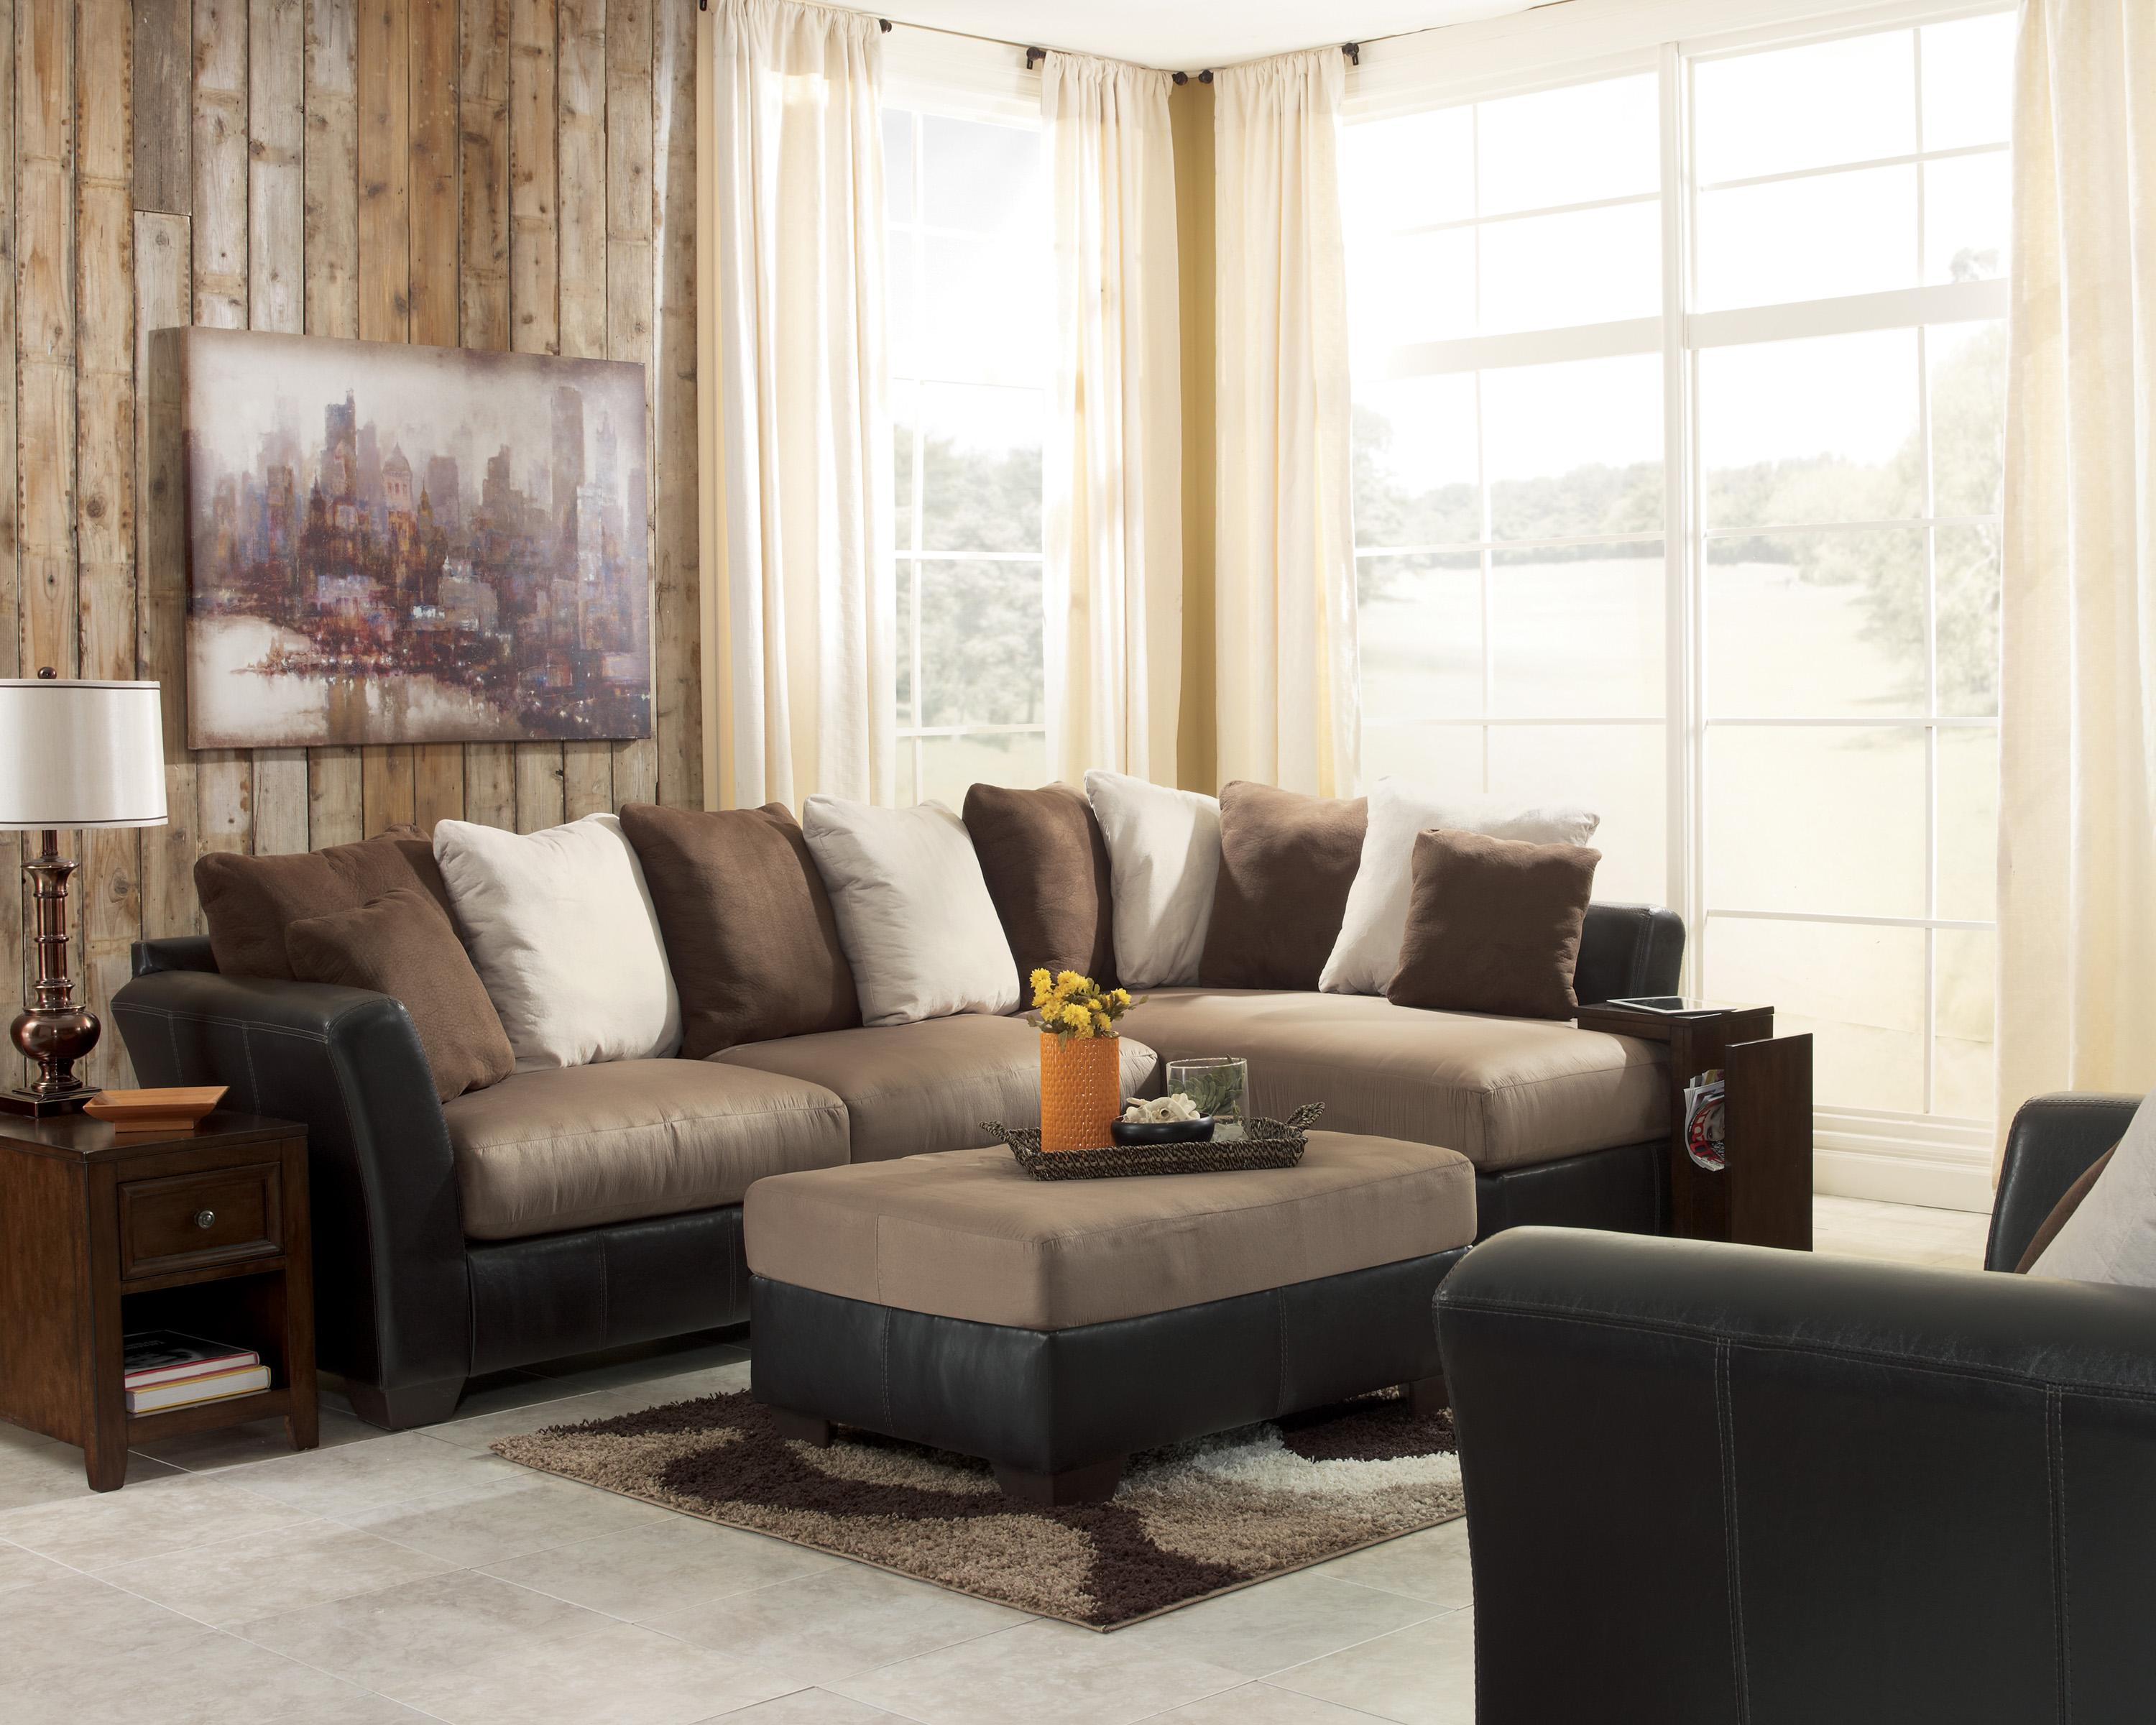 Mocha Sectional Sofa hmmi